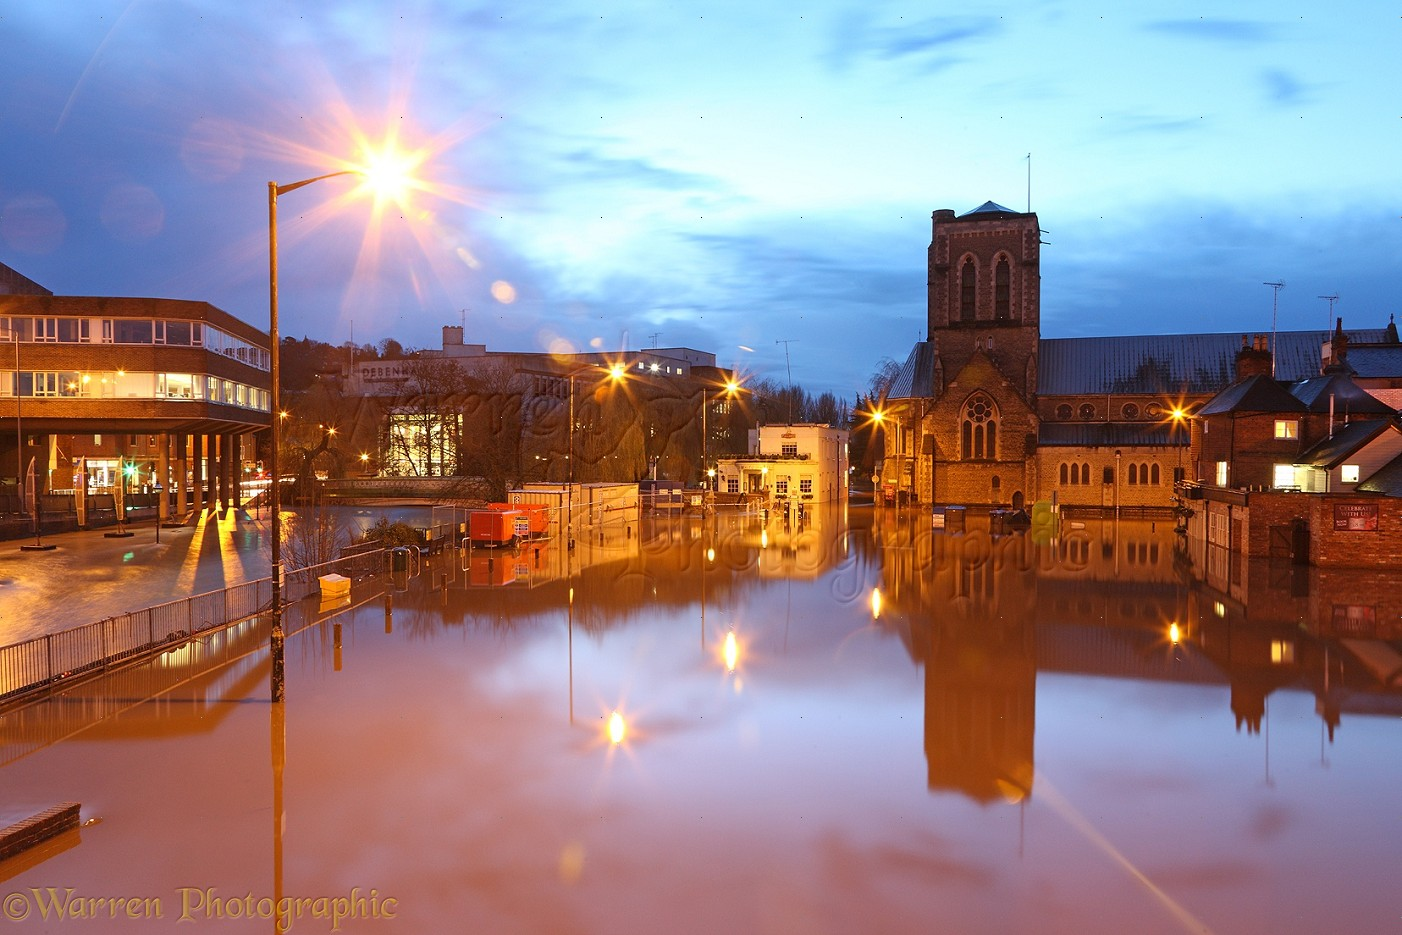 flooding in guildford at night photo wp39276